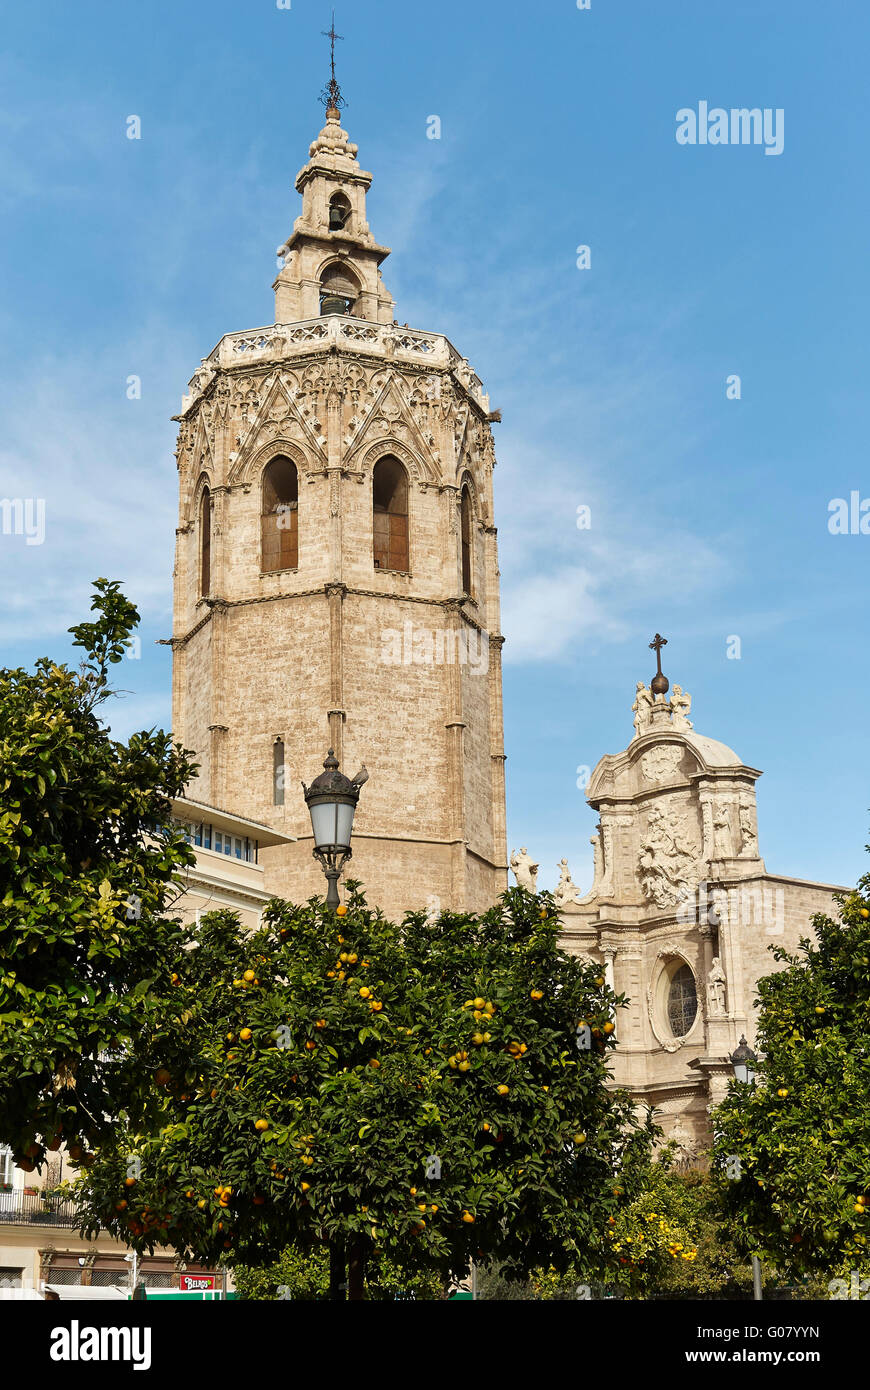 El Micalet Tower. Cathedral. valencia. Spain. Stock Photo